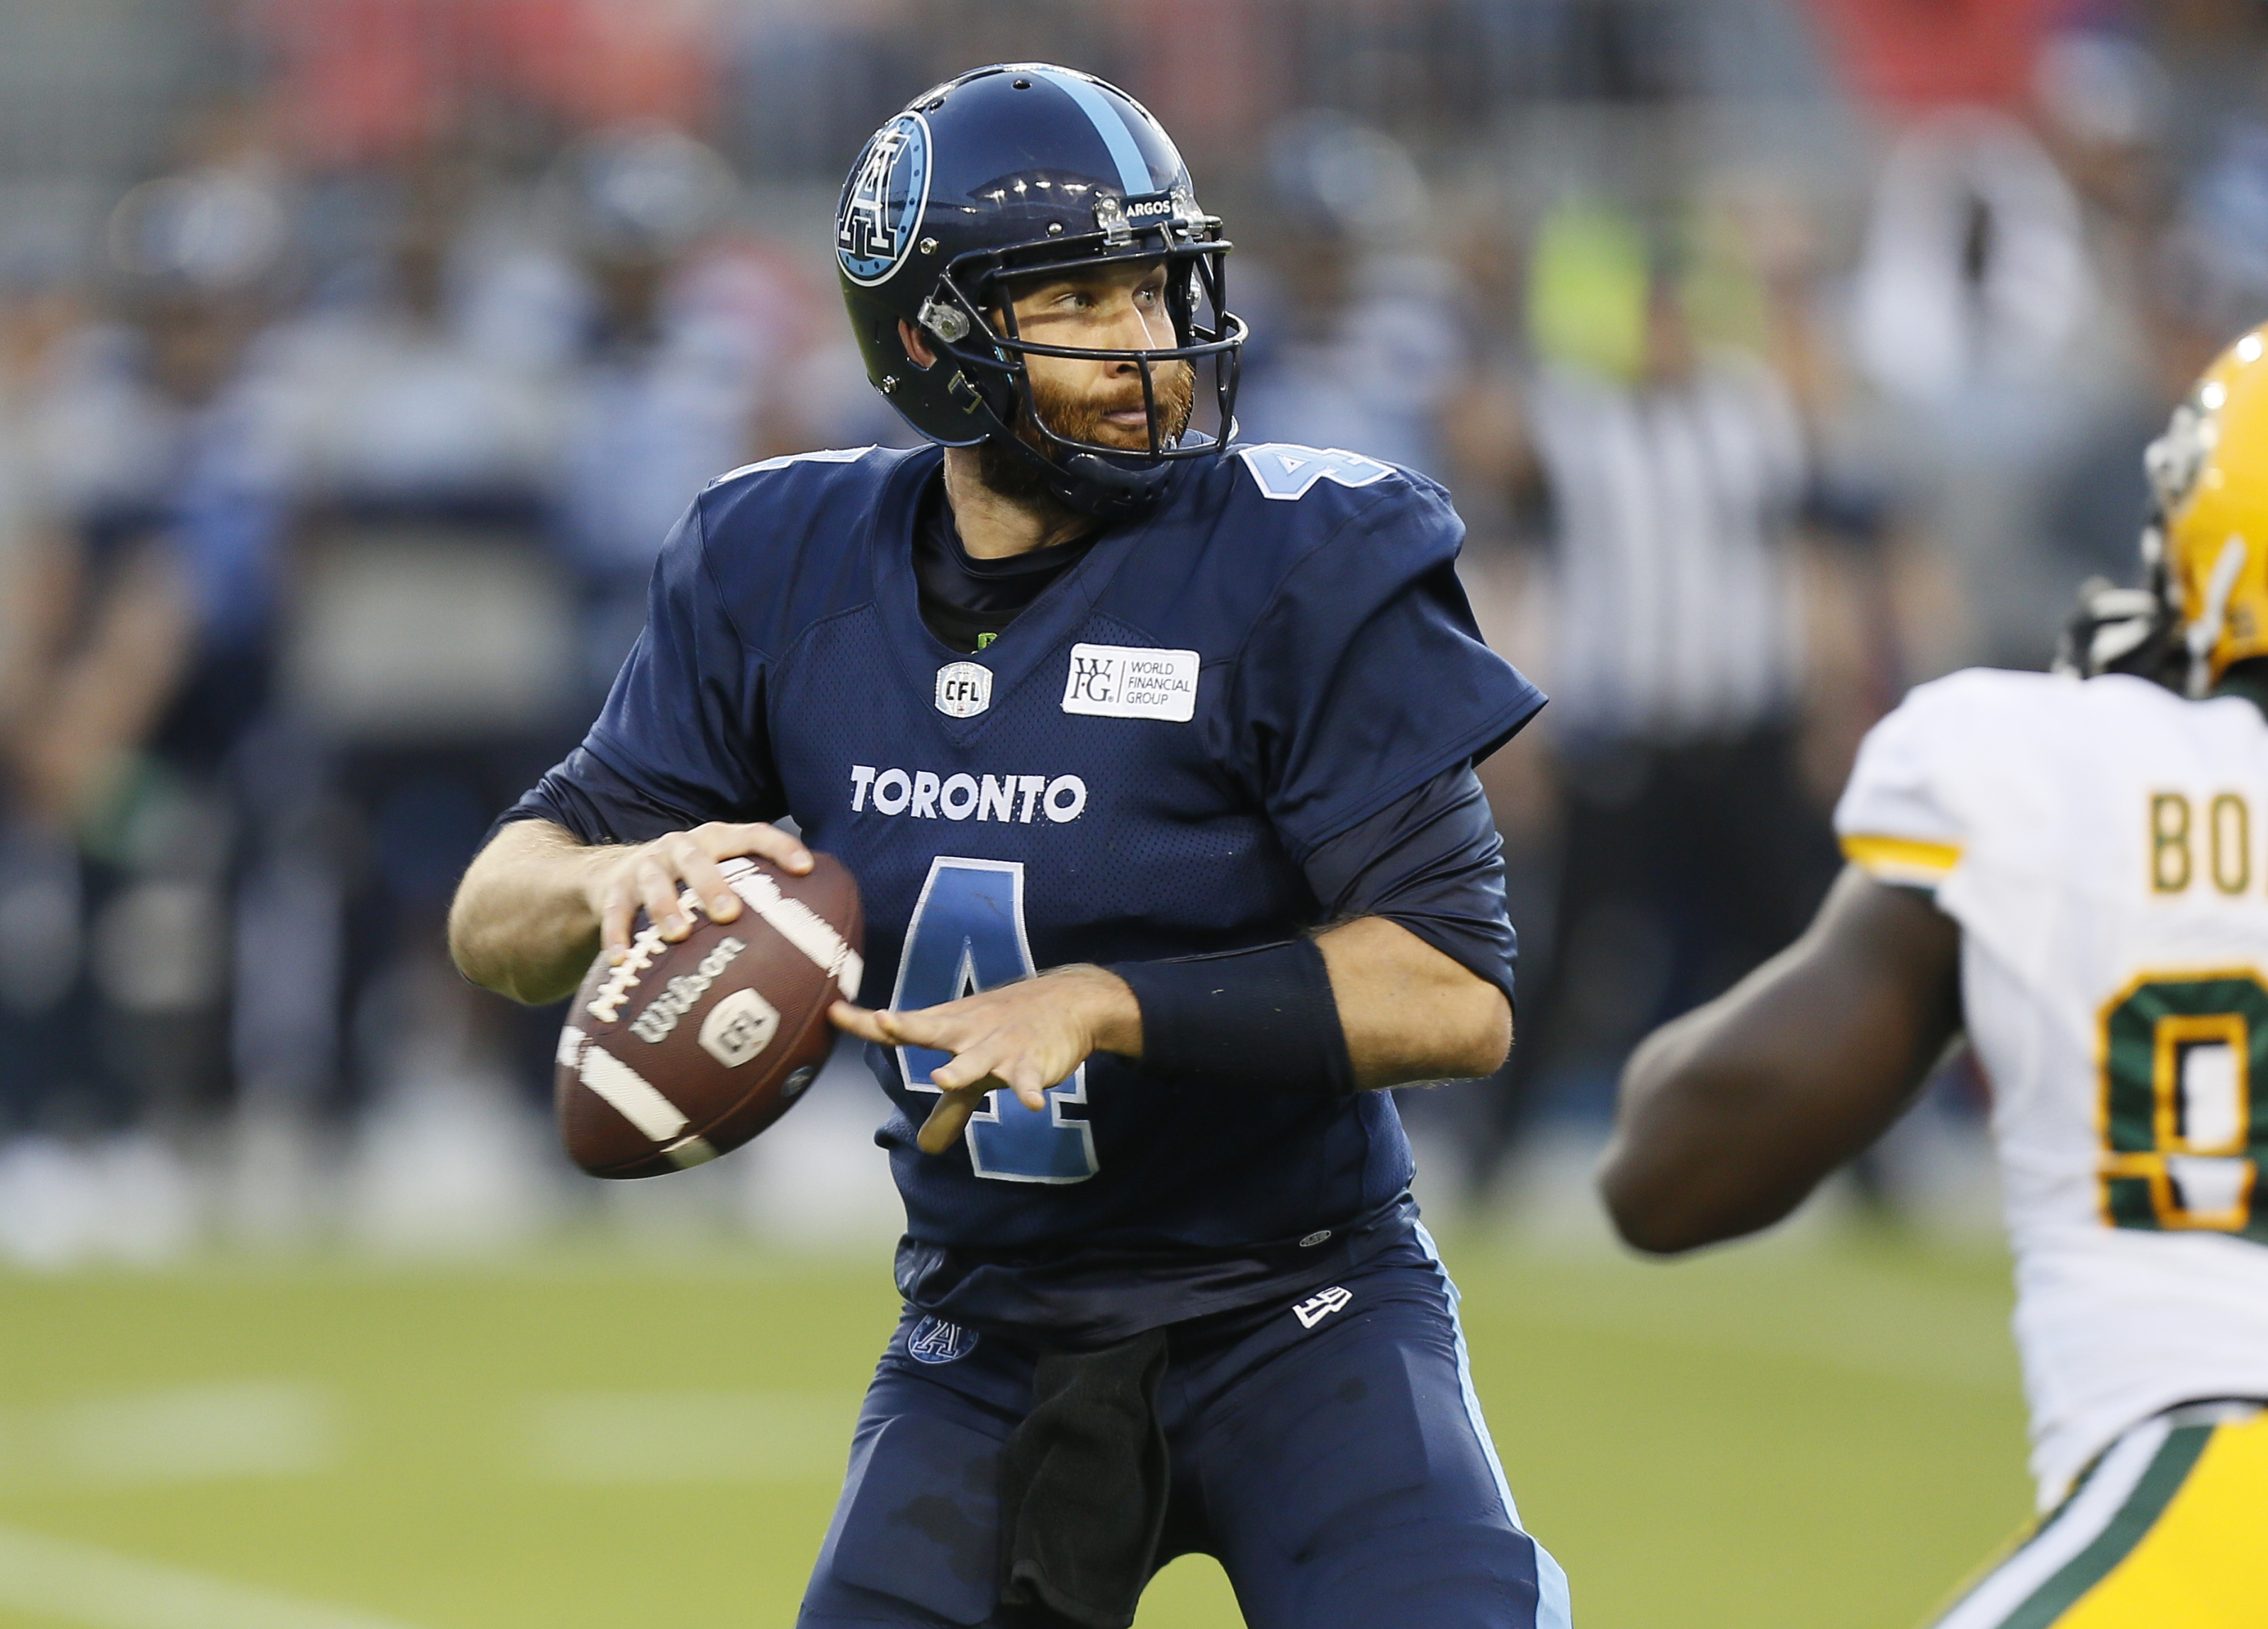 Toronto Argonauts: McLeod Bethel-Thompson opts out of CFL contract